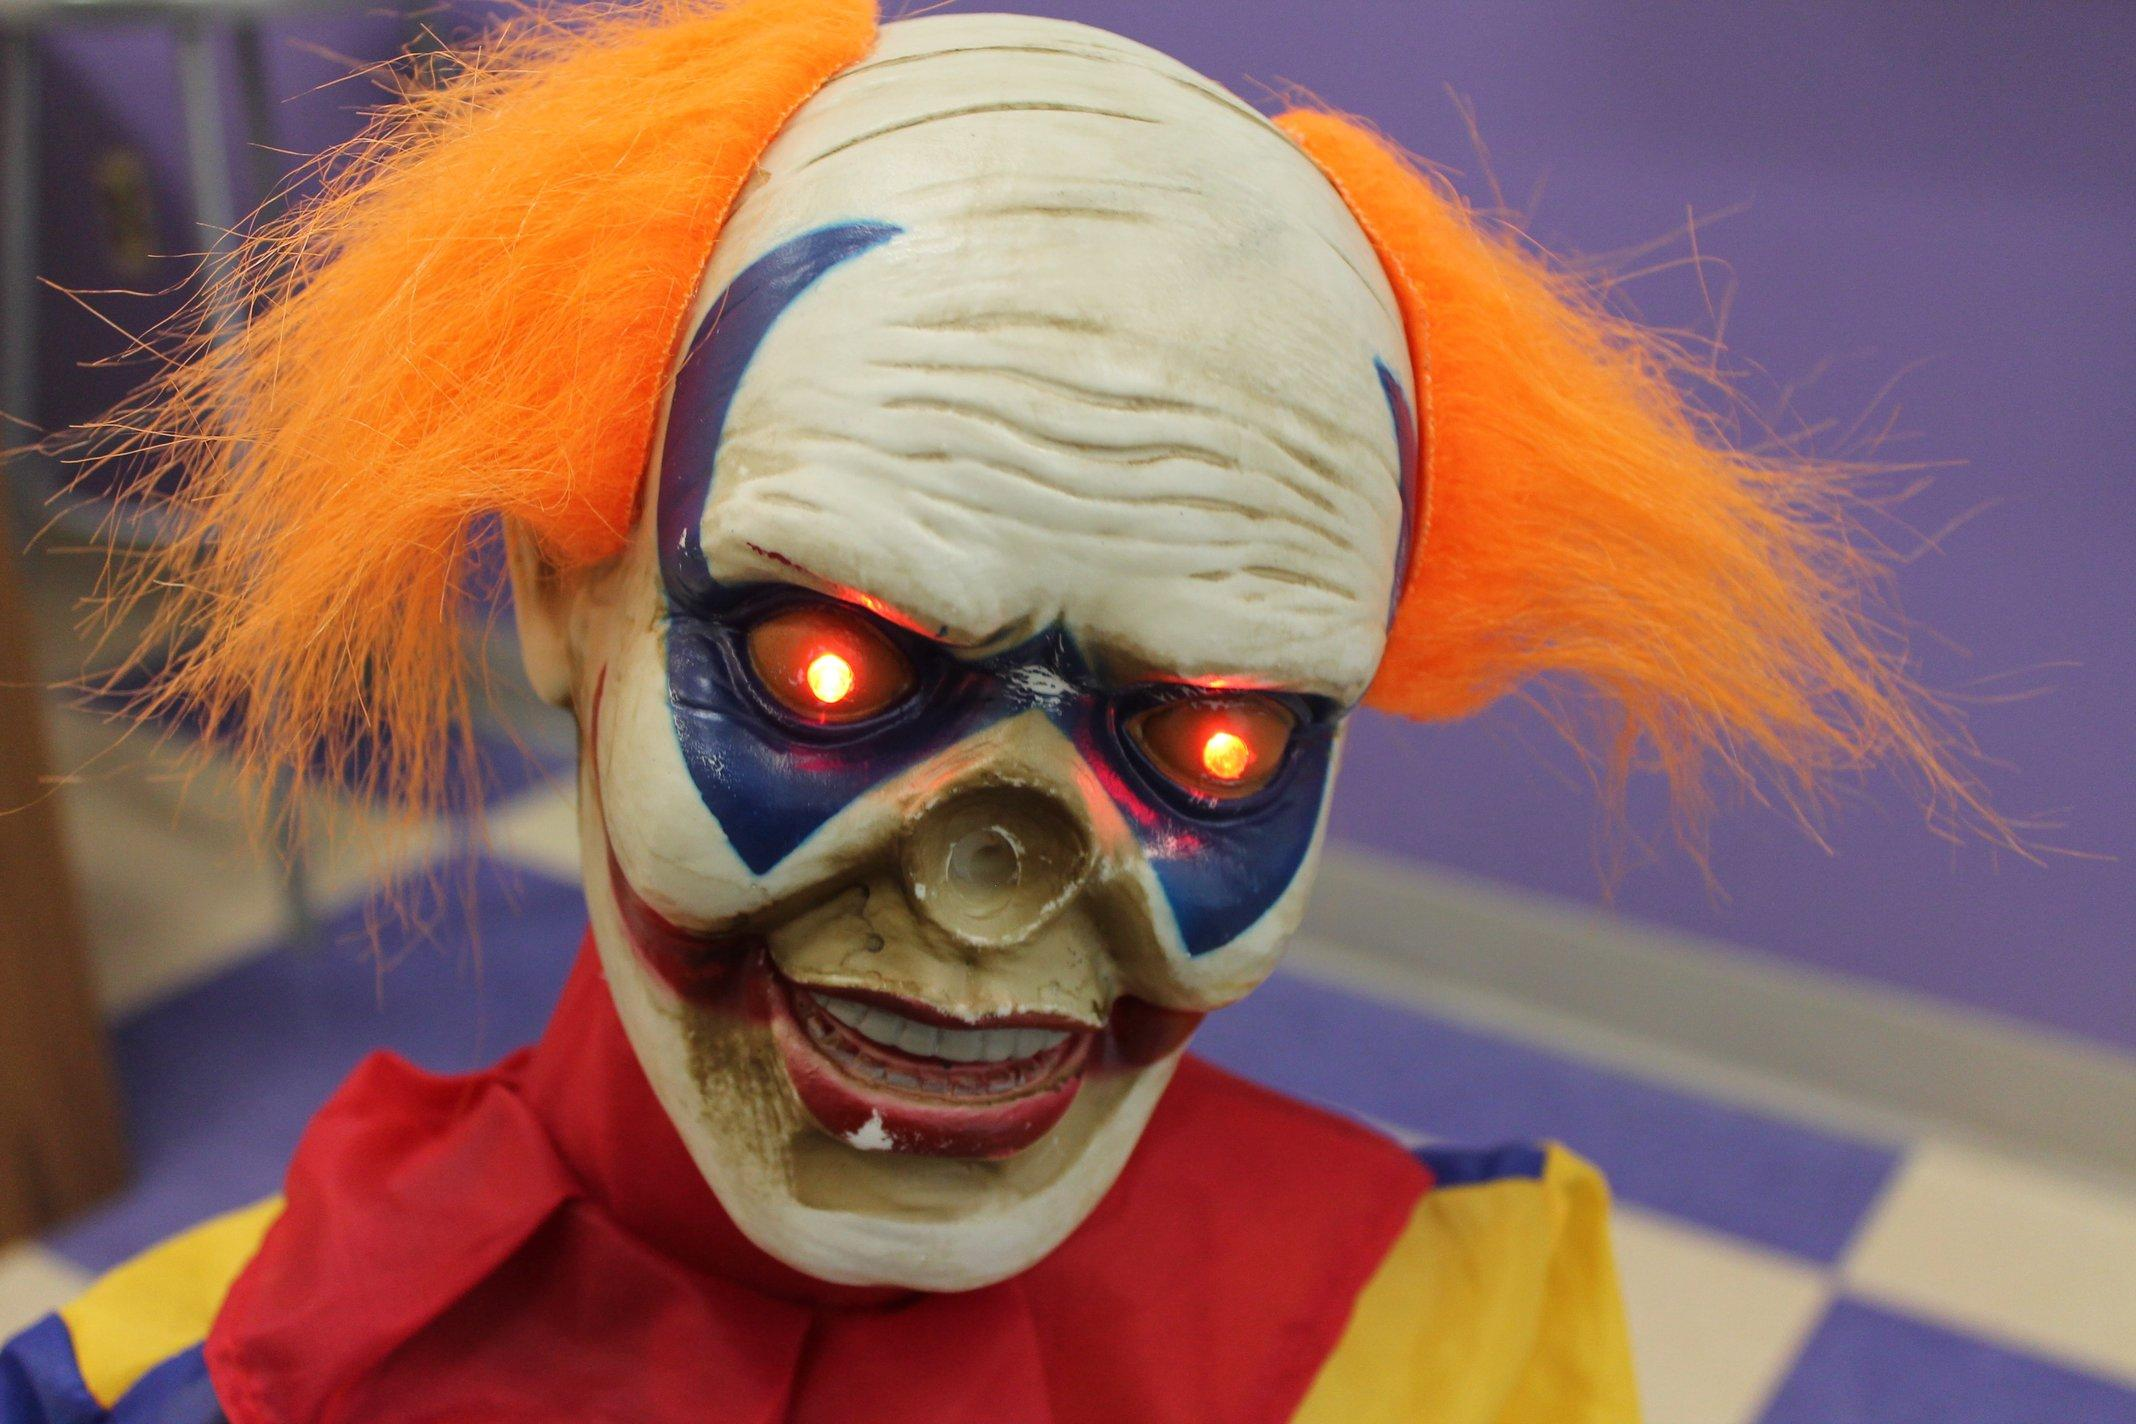 Lots of people were scared of clowns being seen in their towns